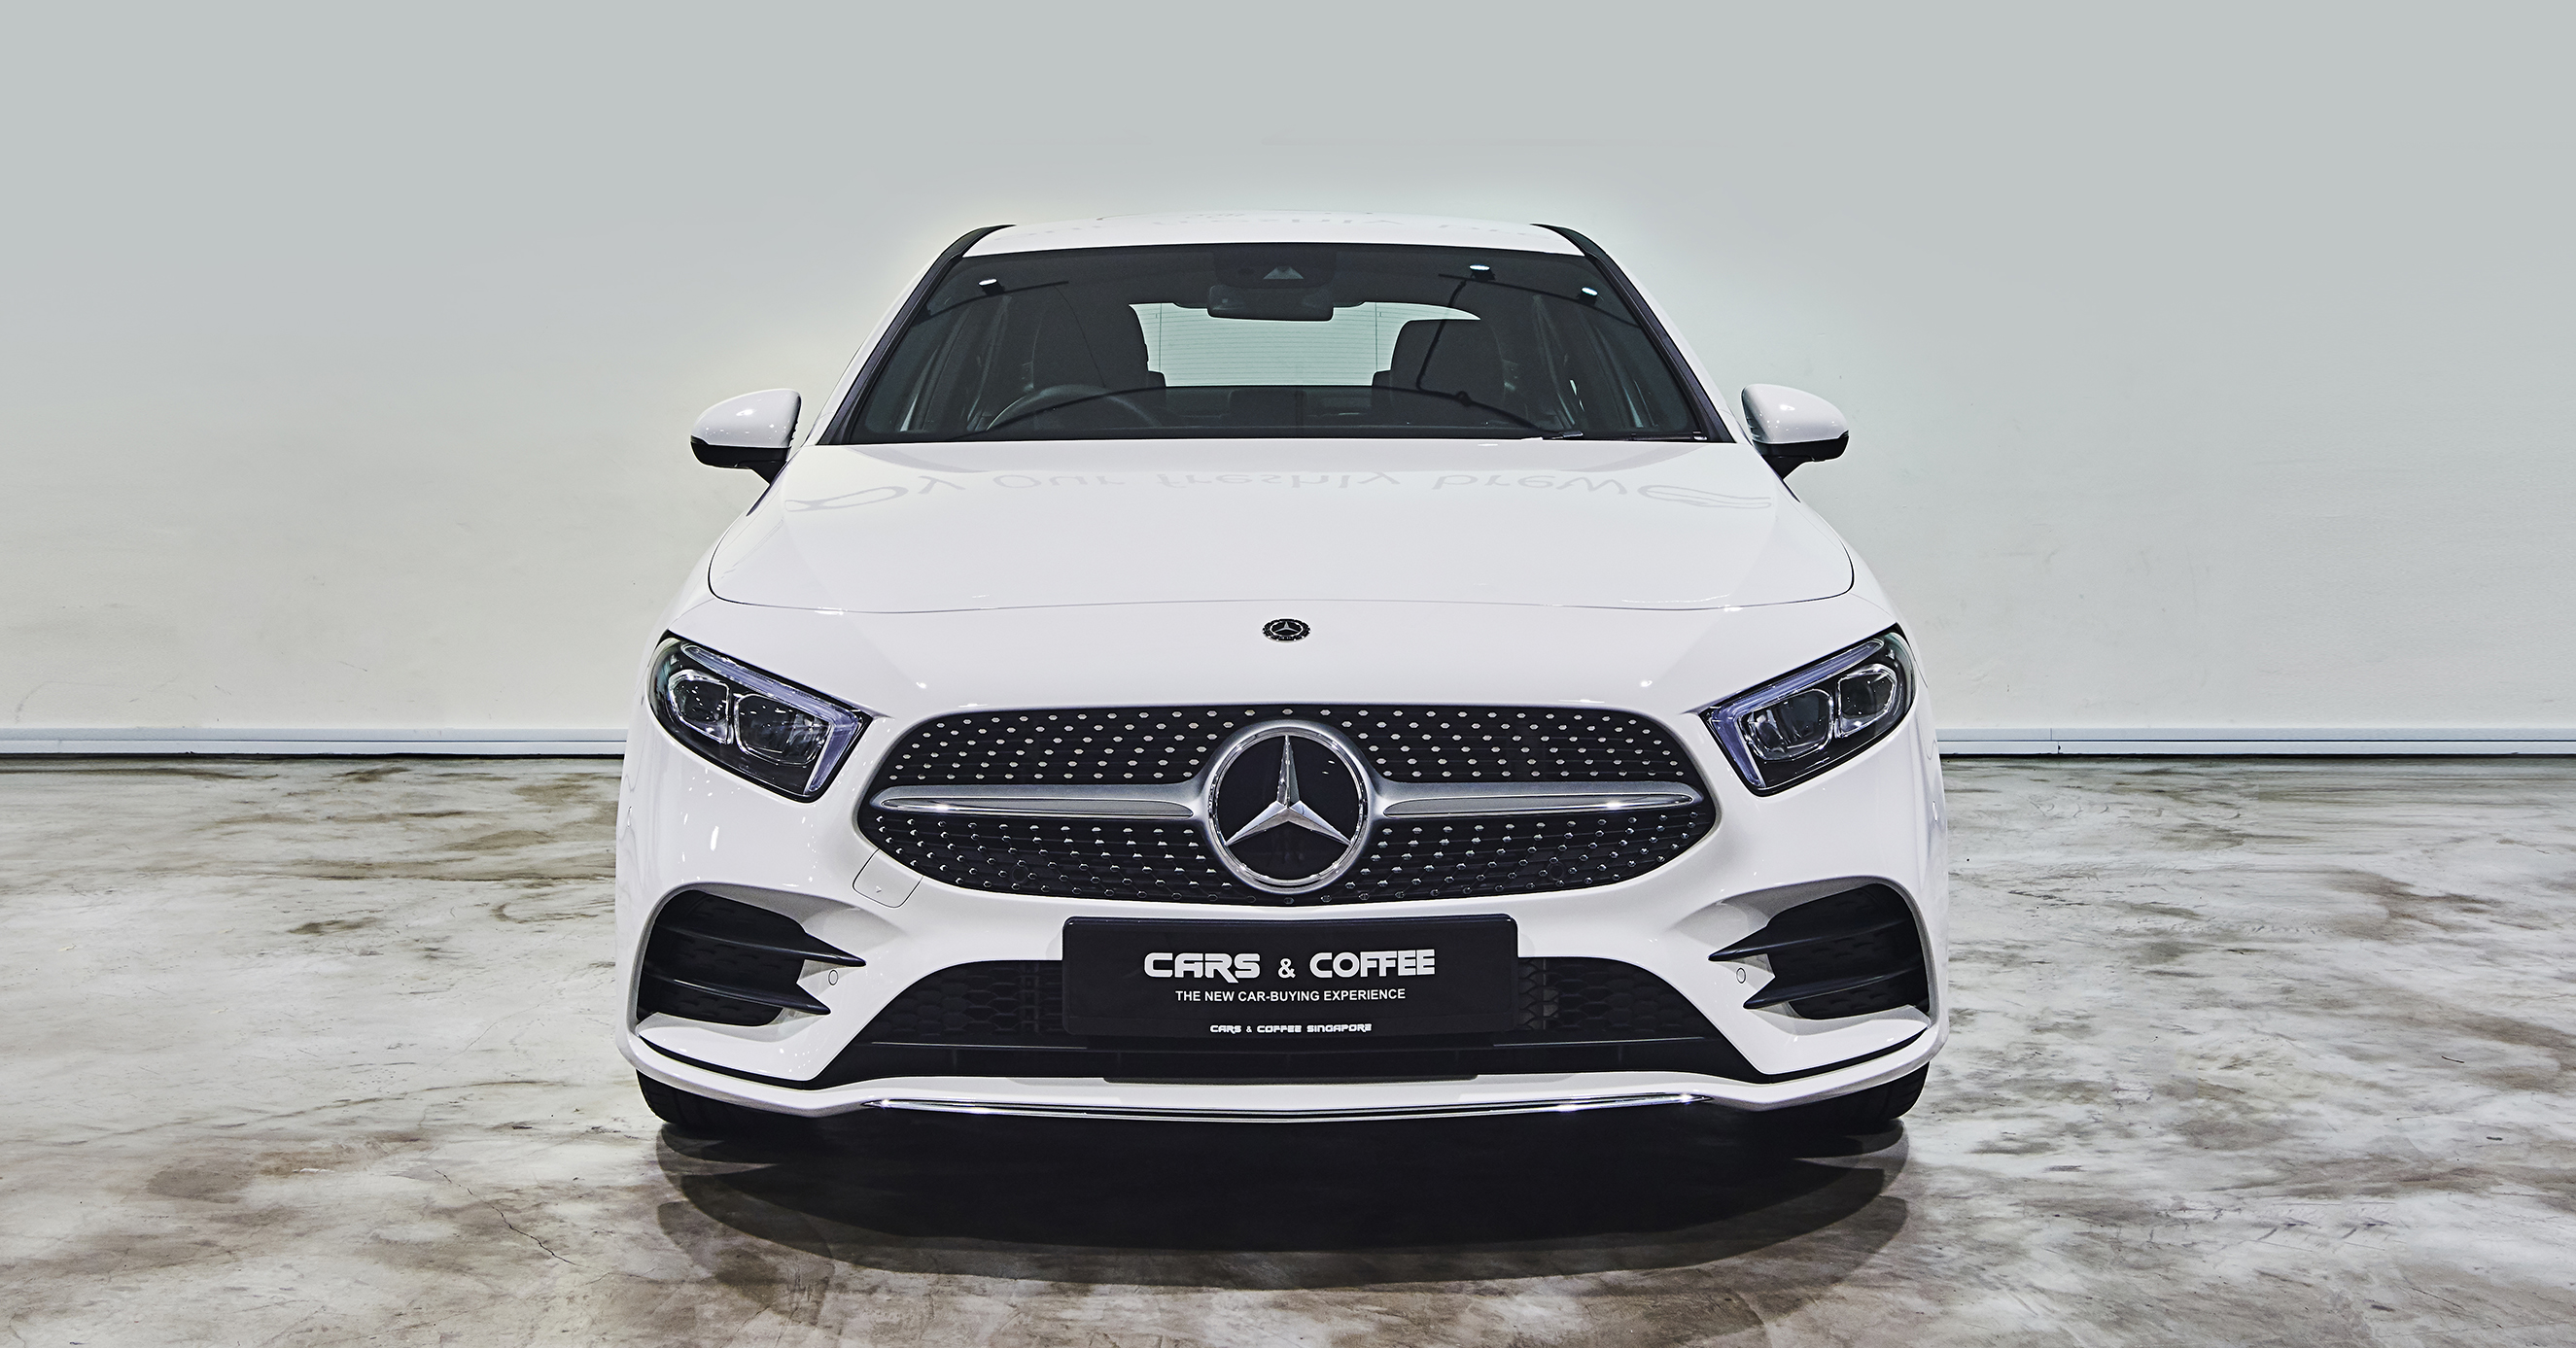 This brand new Saloon, one of the most traditional automotive shapes, meets the A-Class, one of the most innovative, revolutionary vehicles. The result is as dynamic as it is desirable.